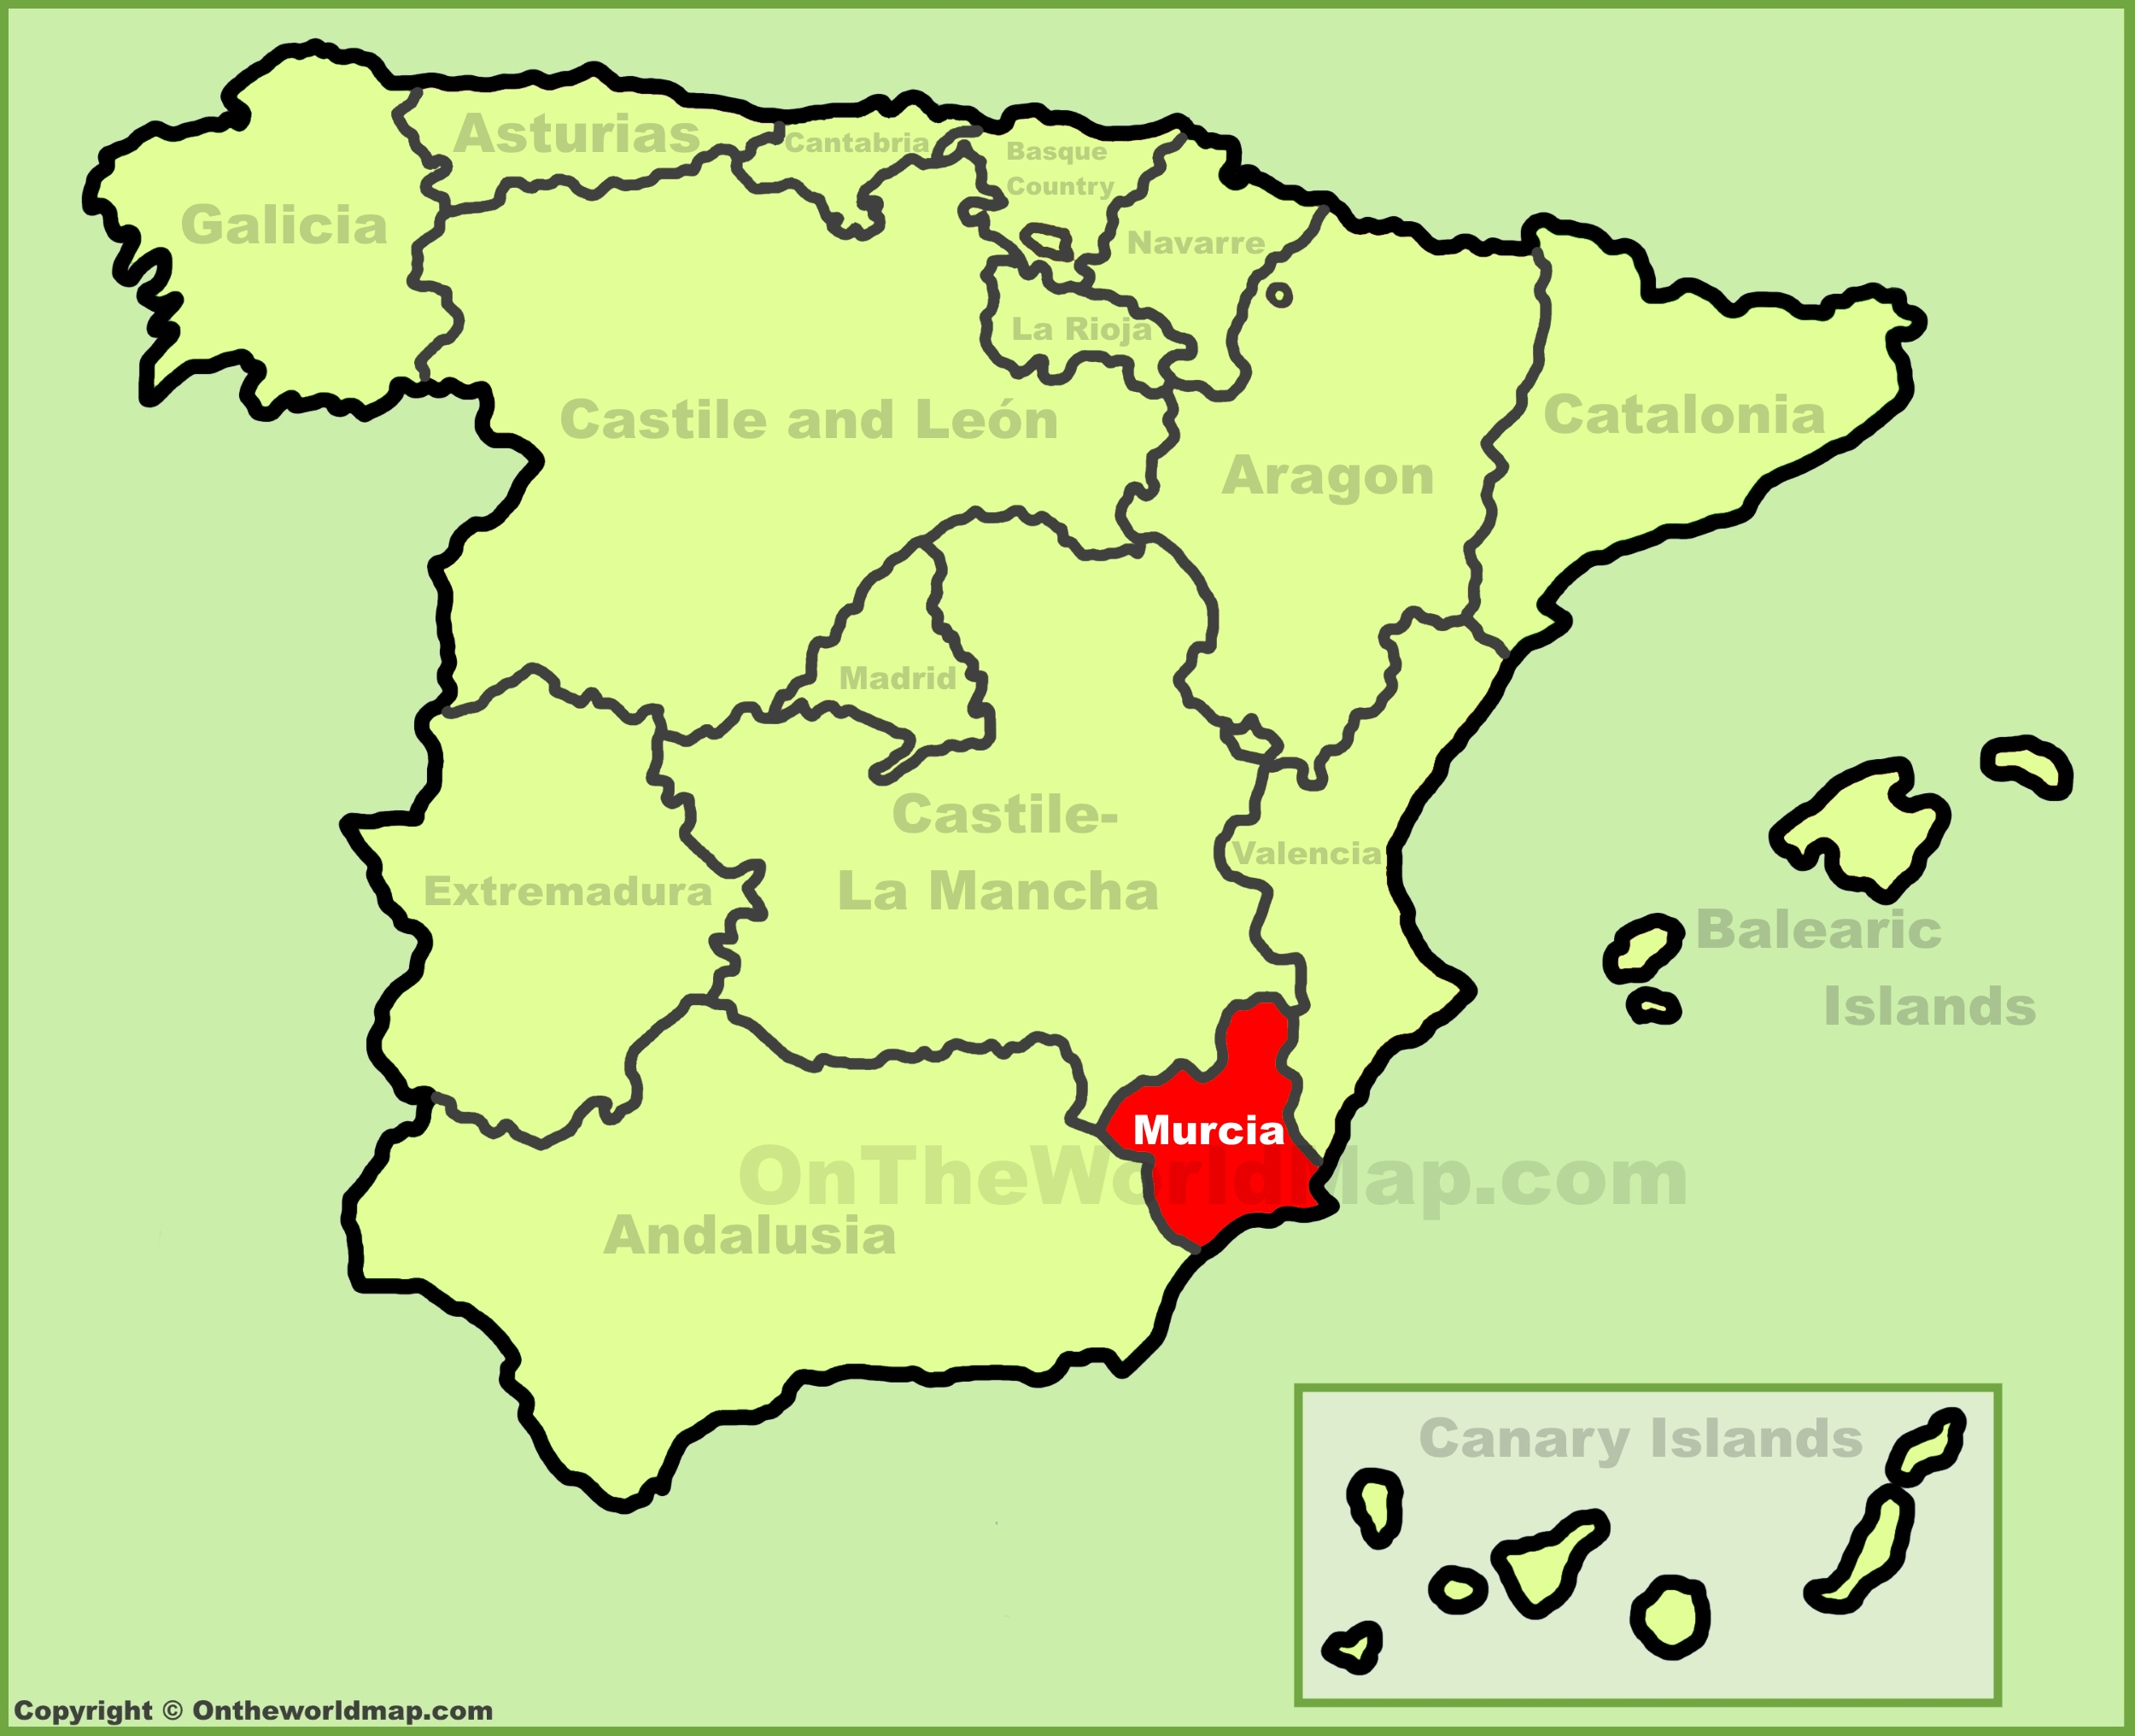 Show Murcia On Map Of Spain.Region Of Murcia Maps Spain Maps Of Region Of Murcia